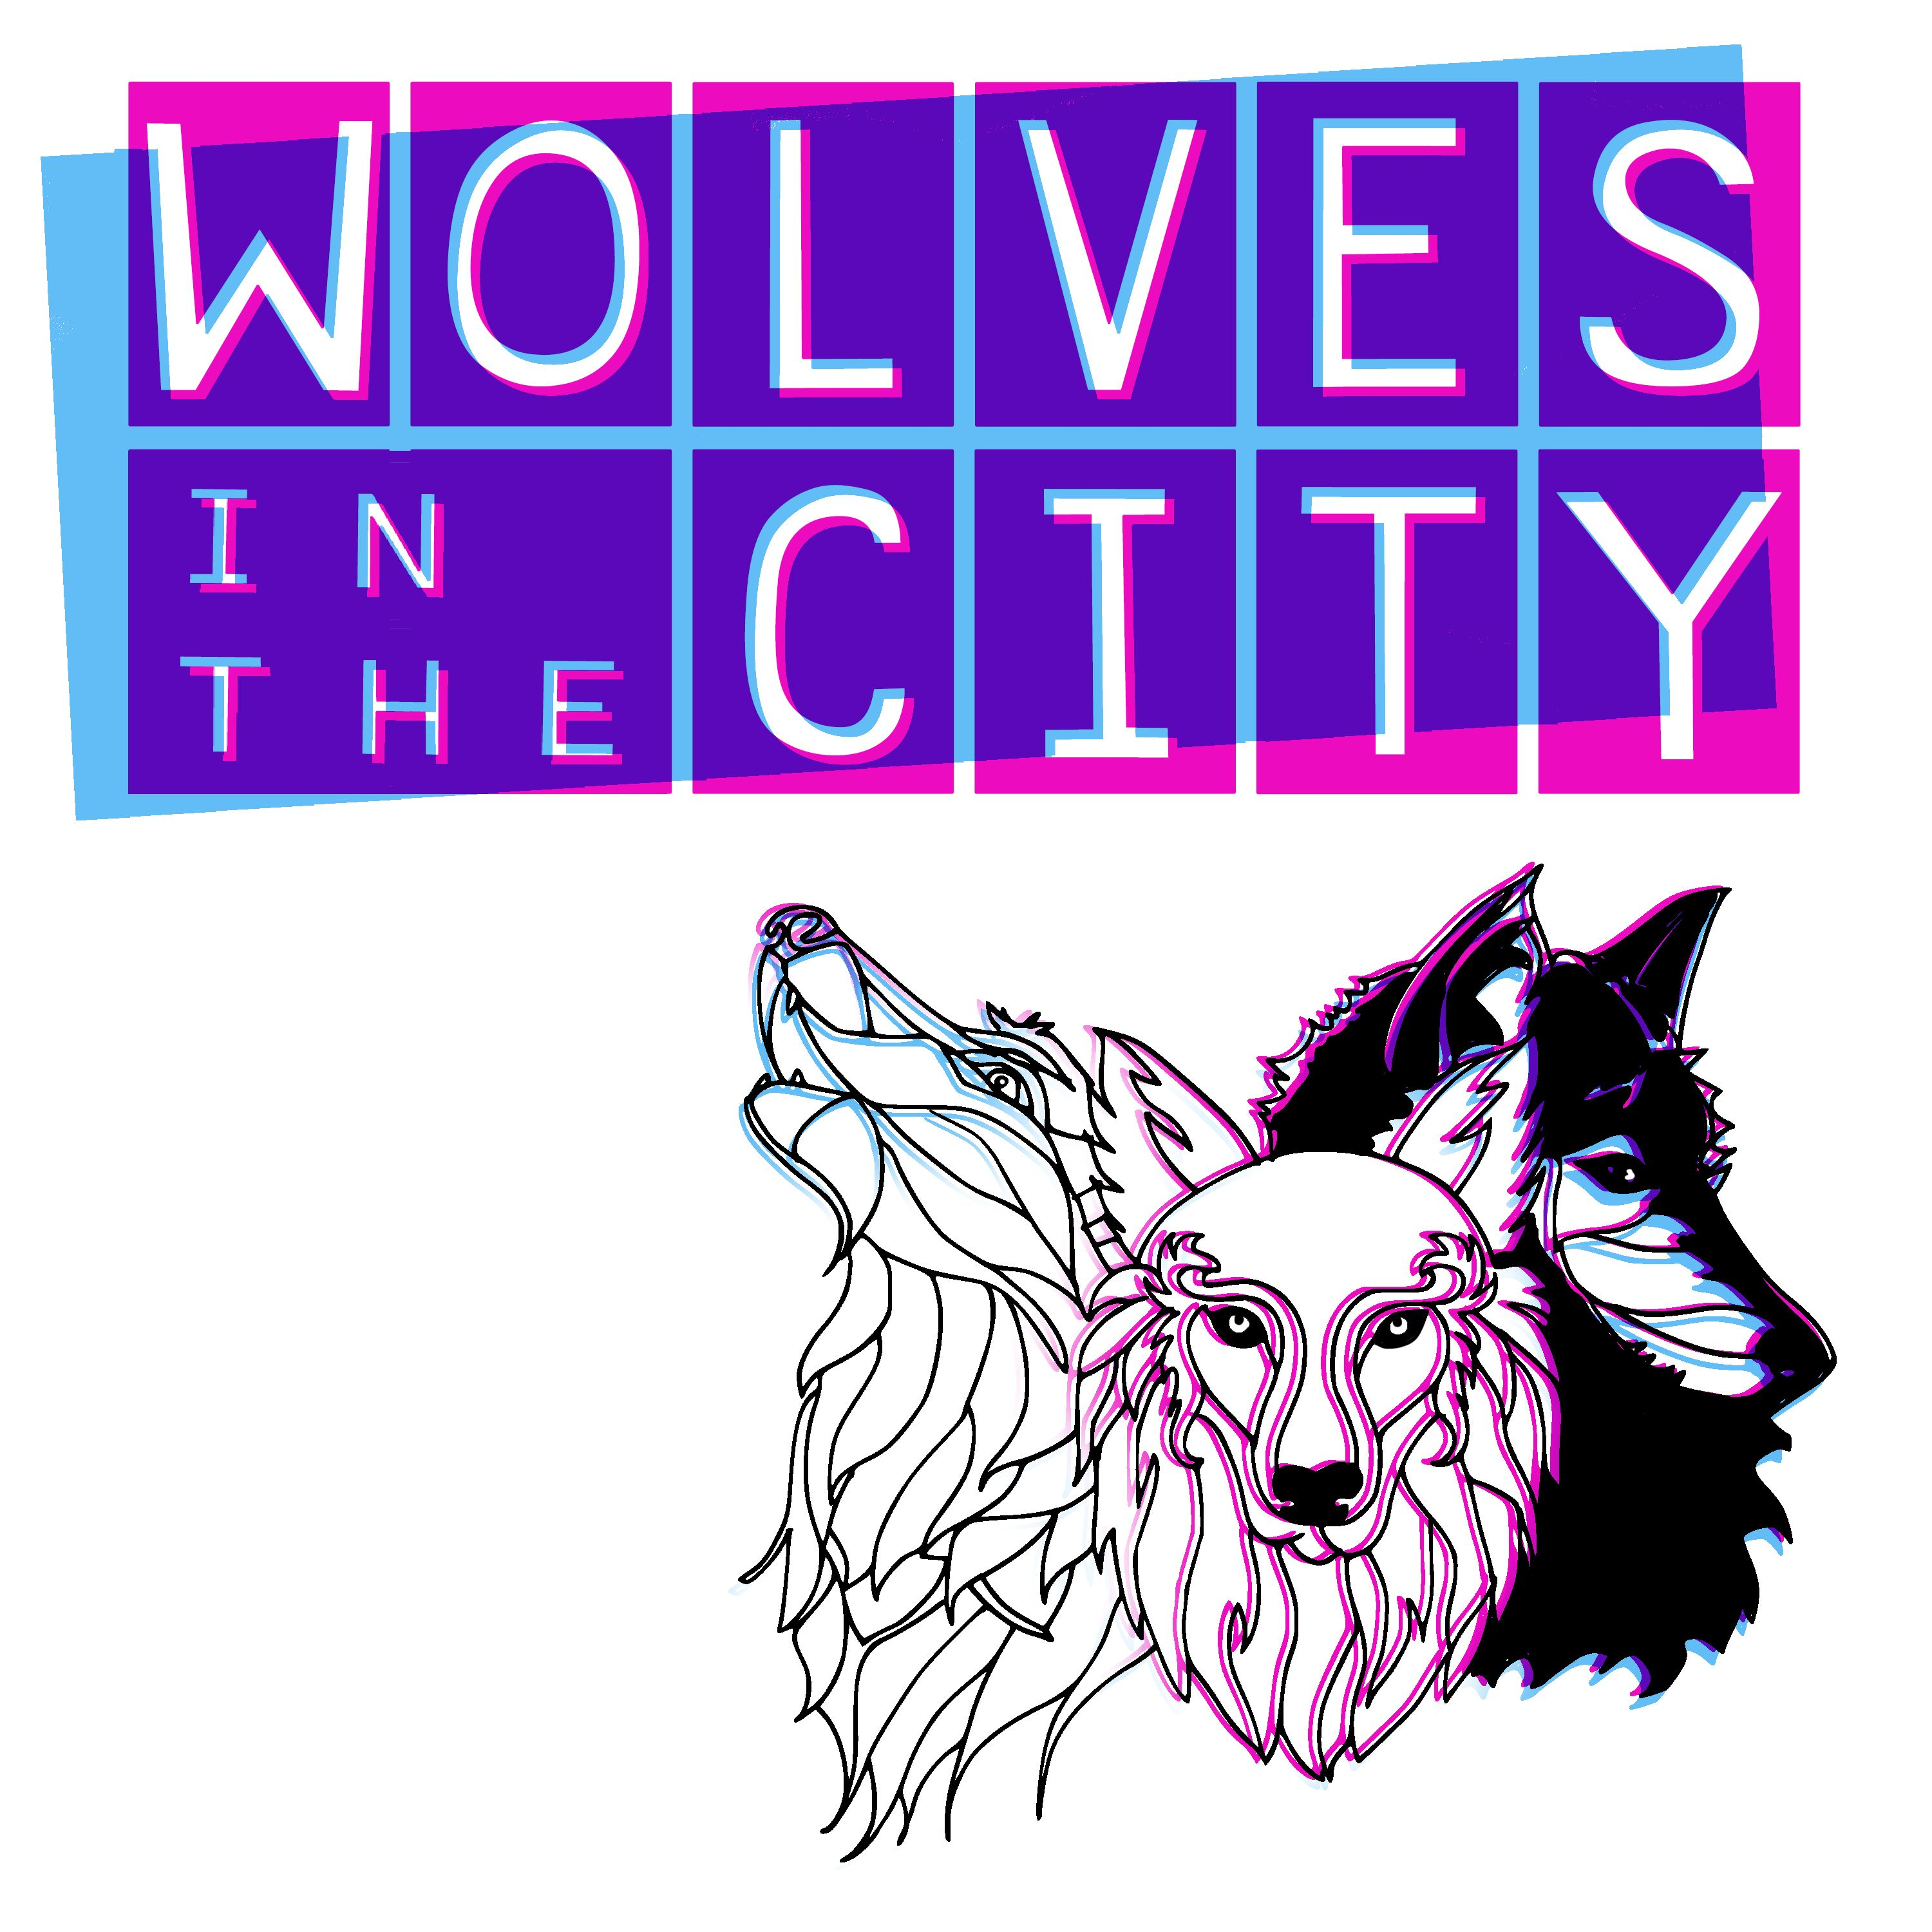 #6 There's a new wolf in the city